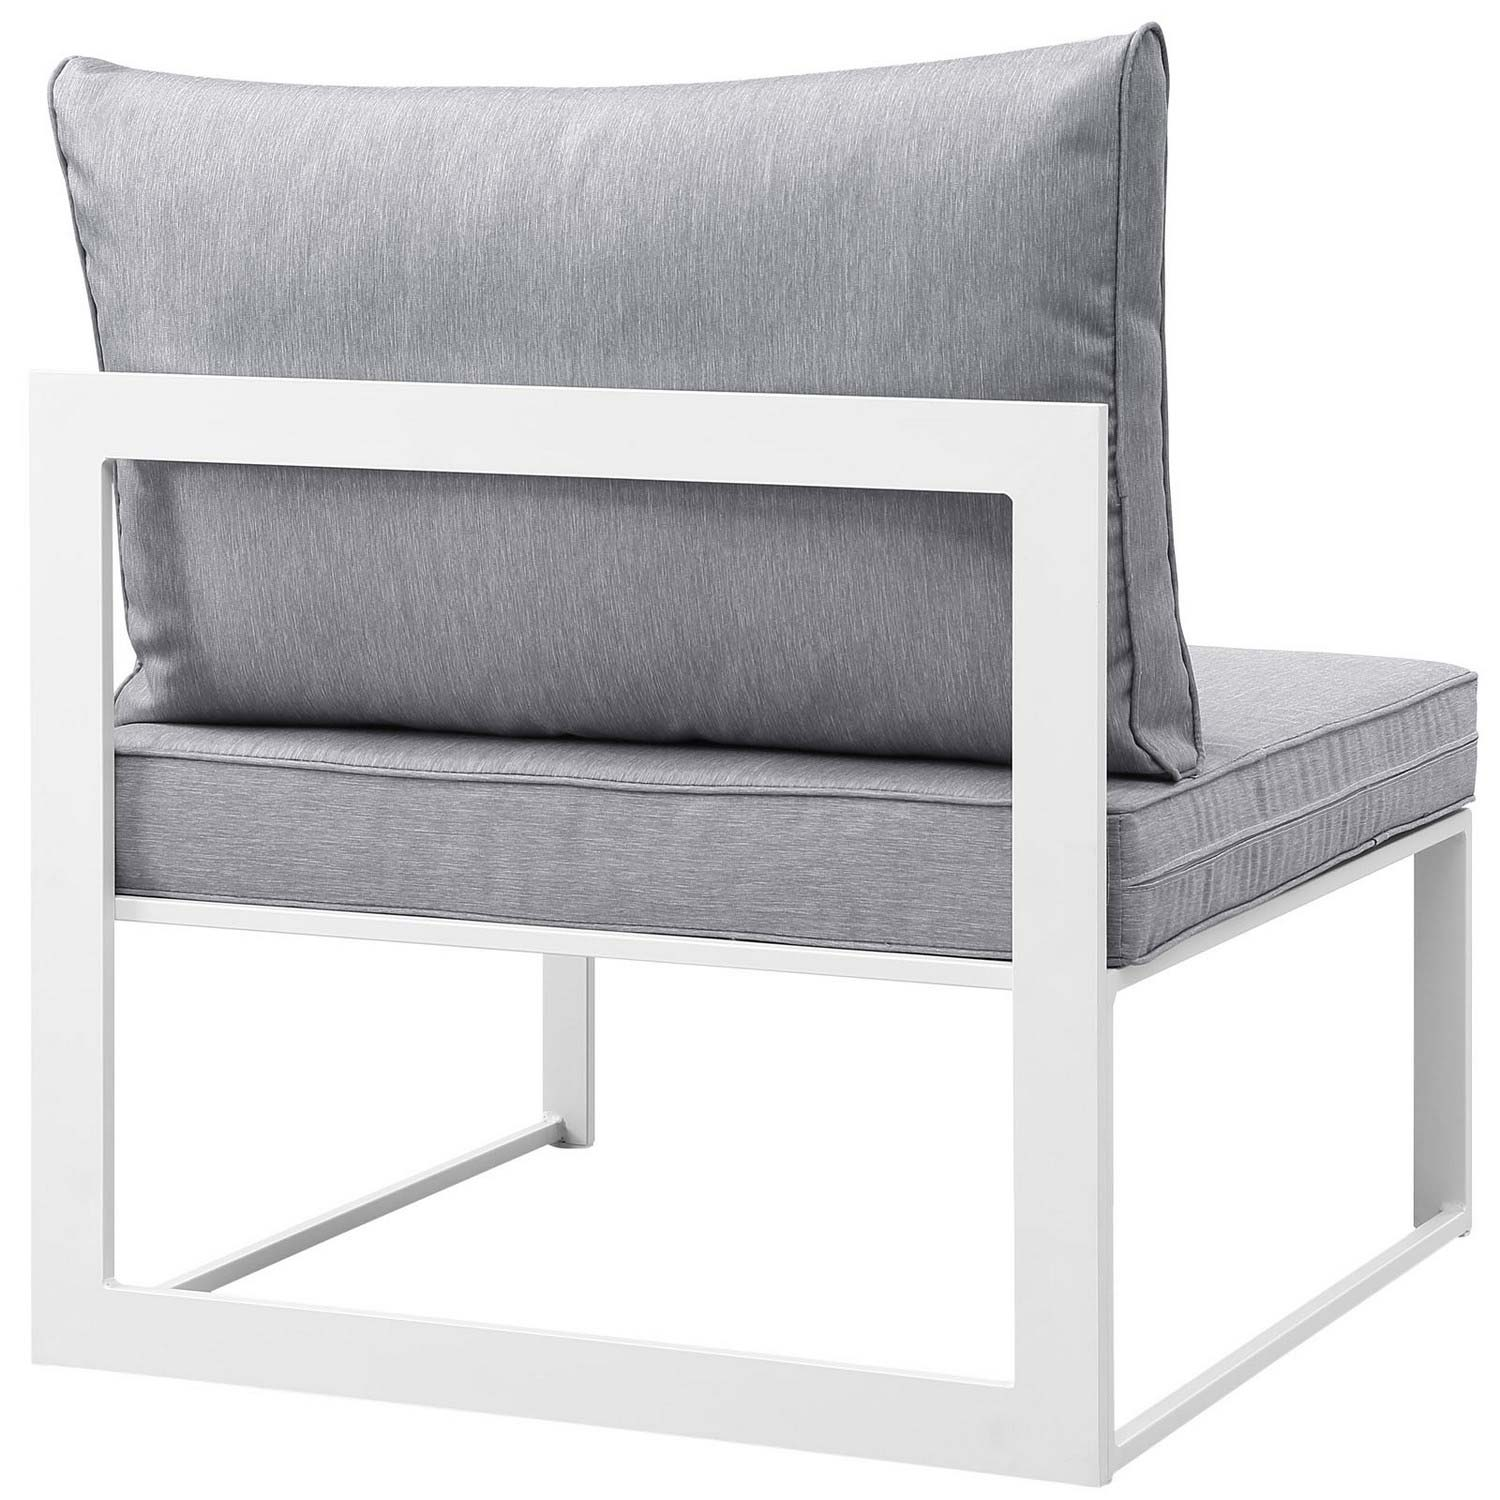 Modway Fortuna Armless Outdoor Patio Sofa - White/Gray